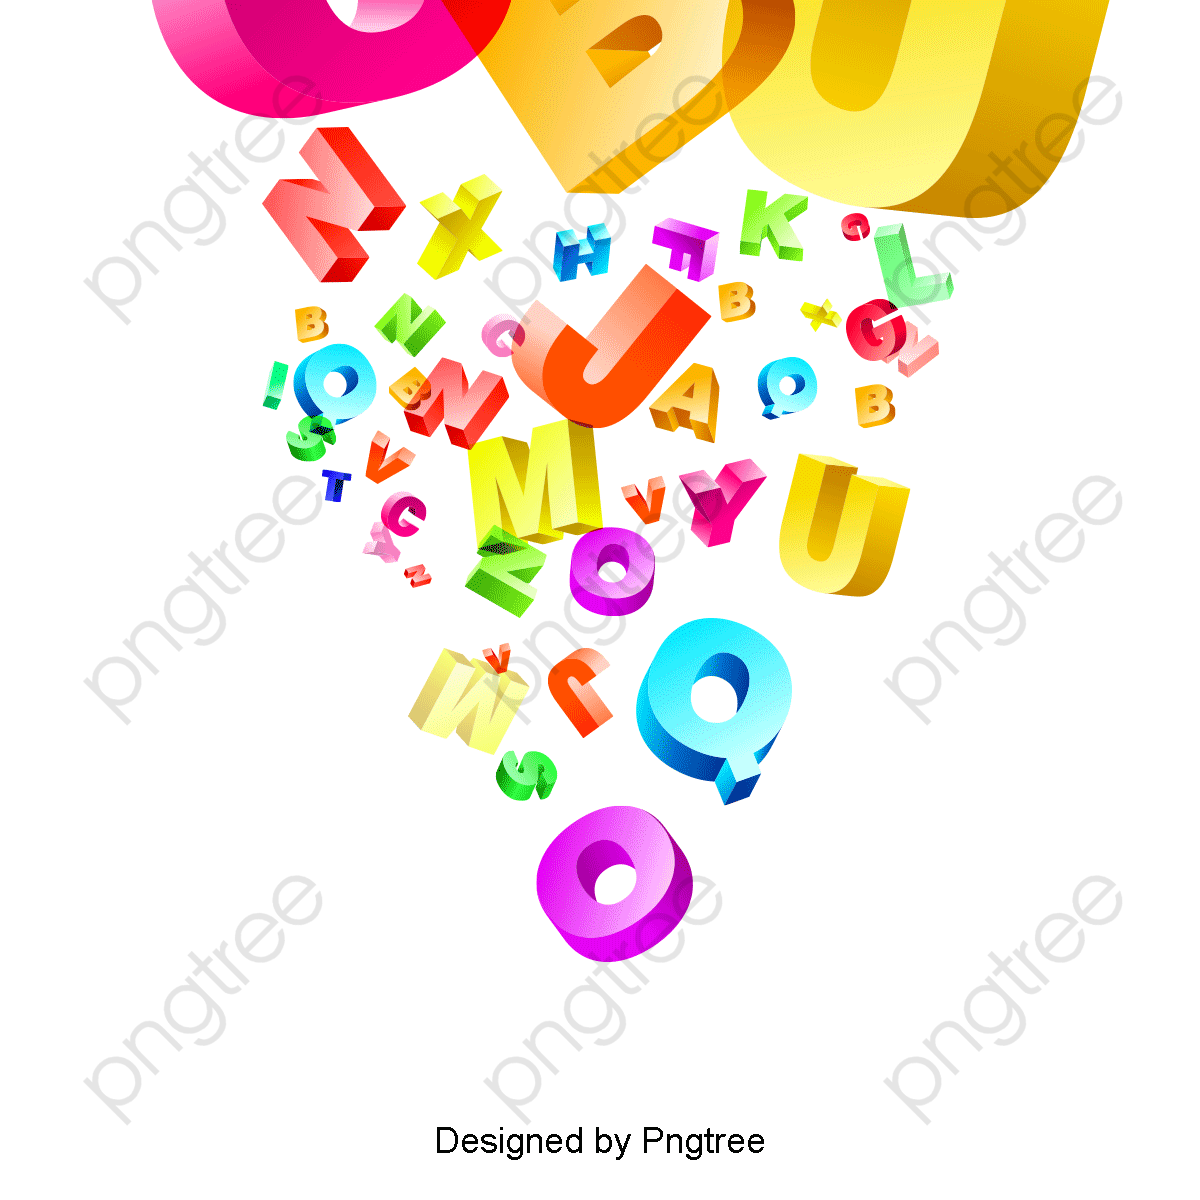 transparent colorful abstract english alphabet png format image with size 1200 1200 preview page